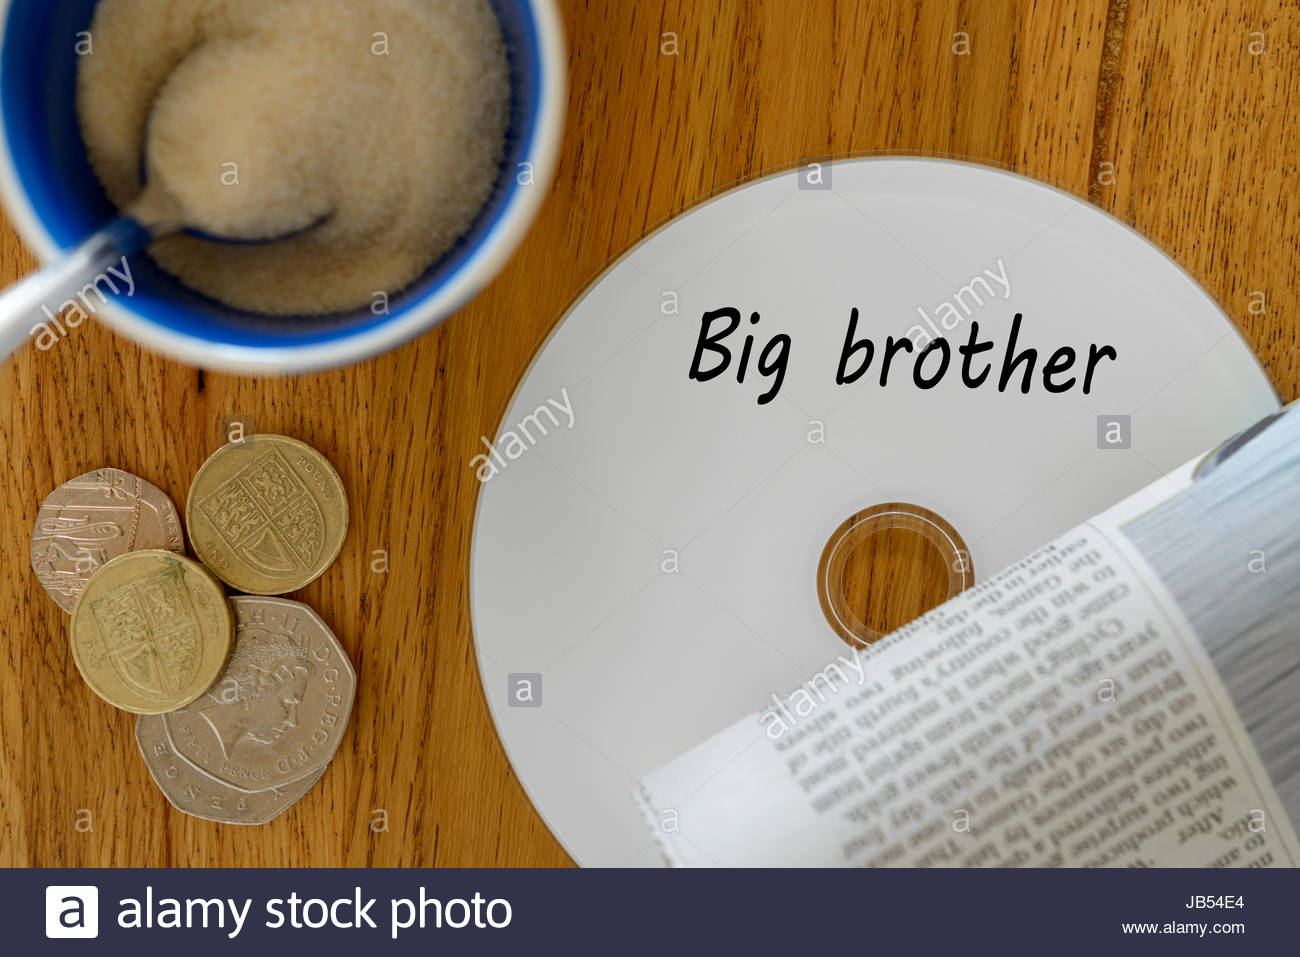 Big brother, data disc left on cafe table, Dorset, England. - Stock Image